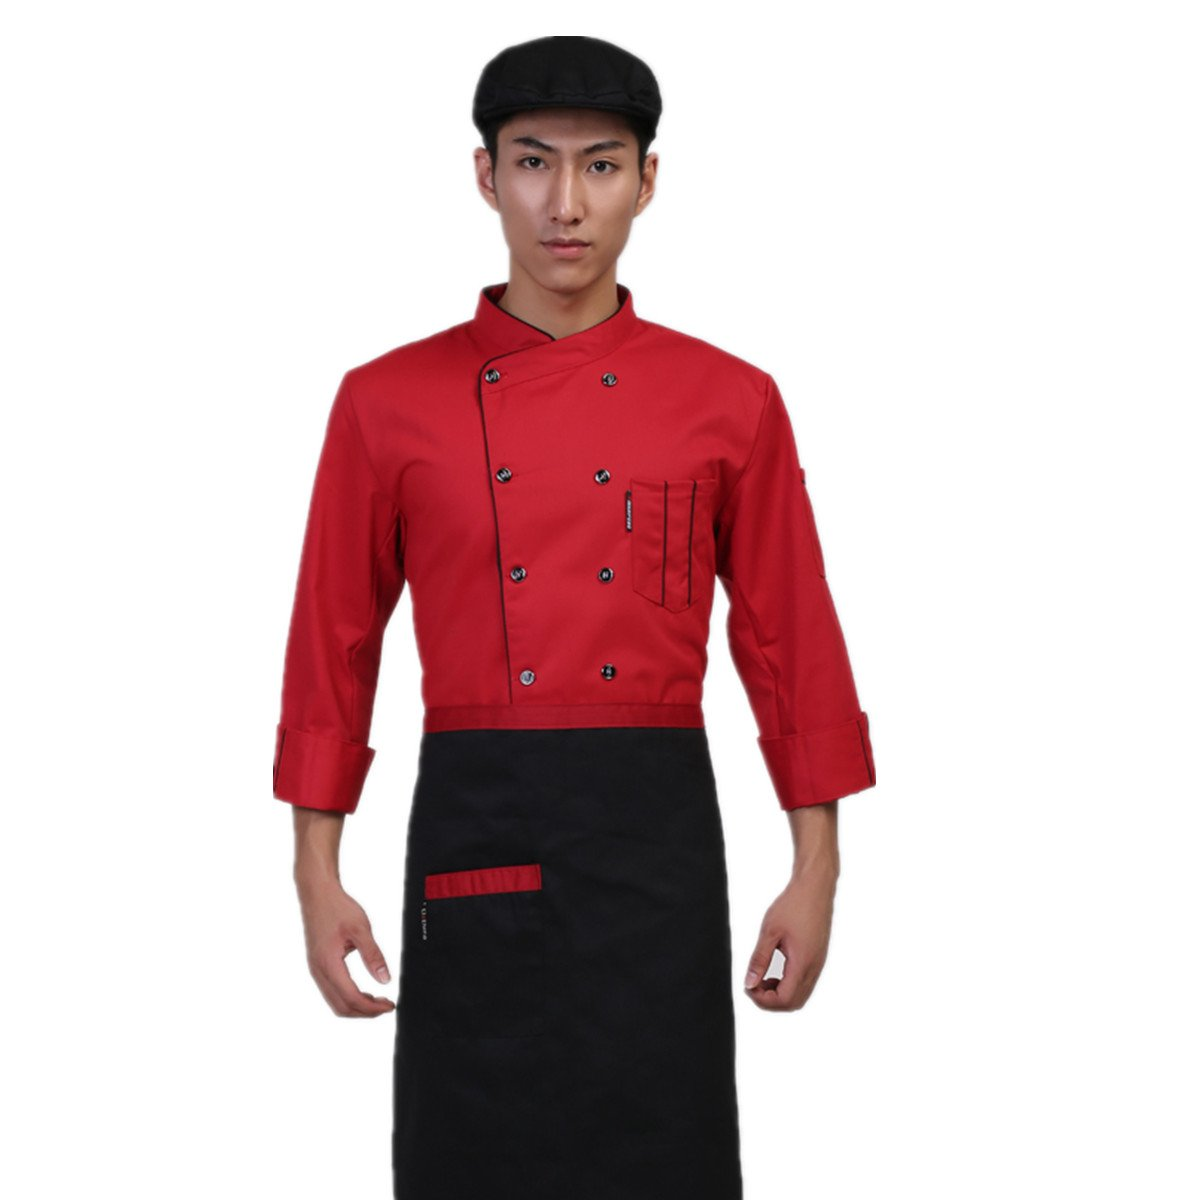 XINFU Unisex-Adult Chef's Uniform Long Sleeves Plus Size Double-Breasted Chef Coats Short Sleeves for Mens Womens